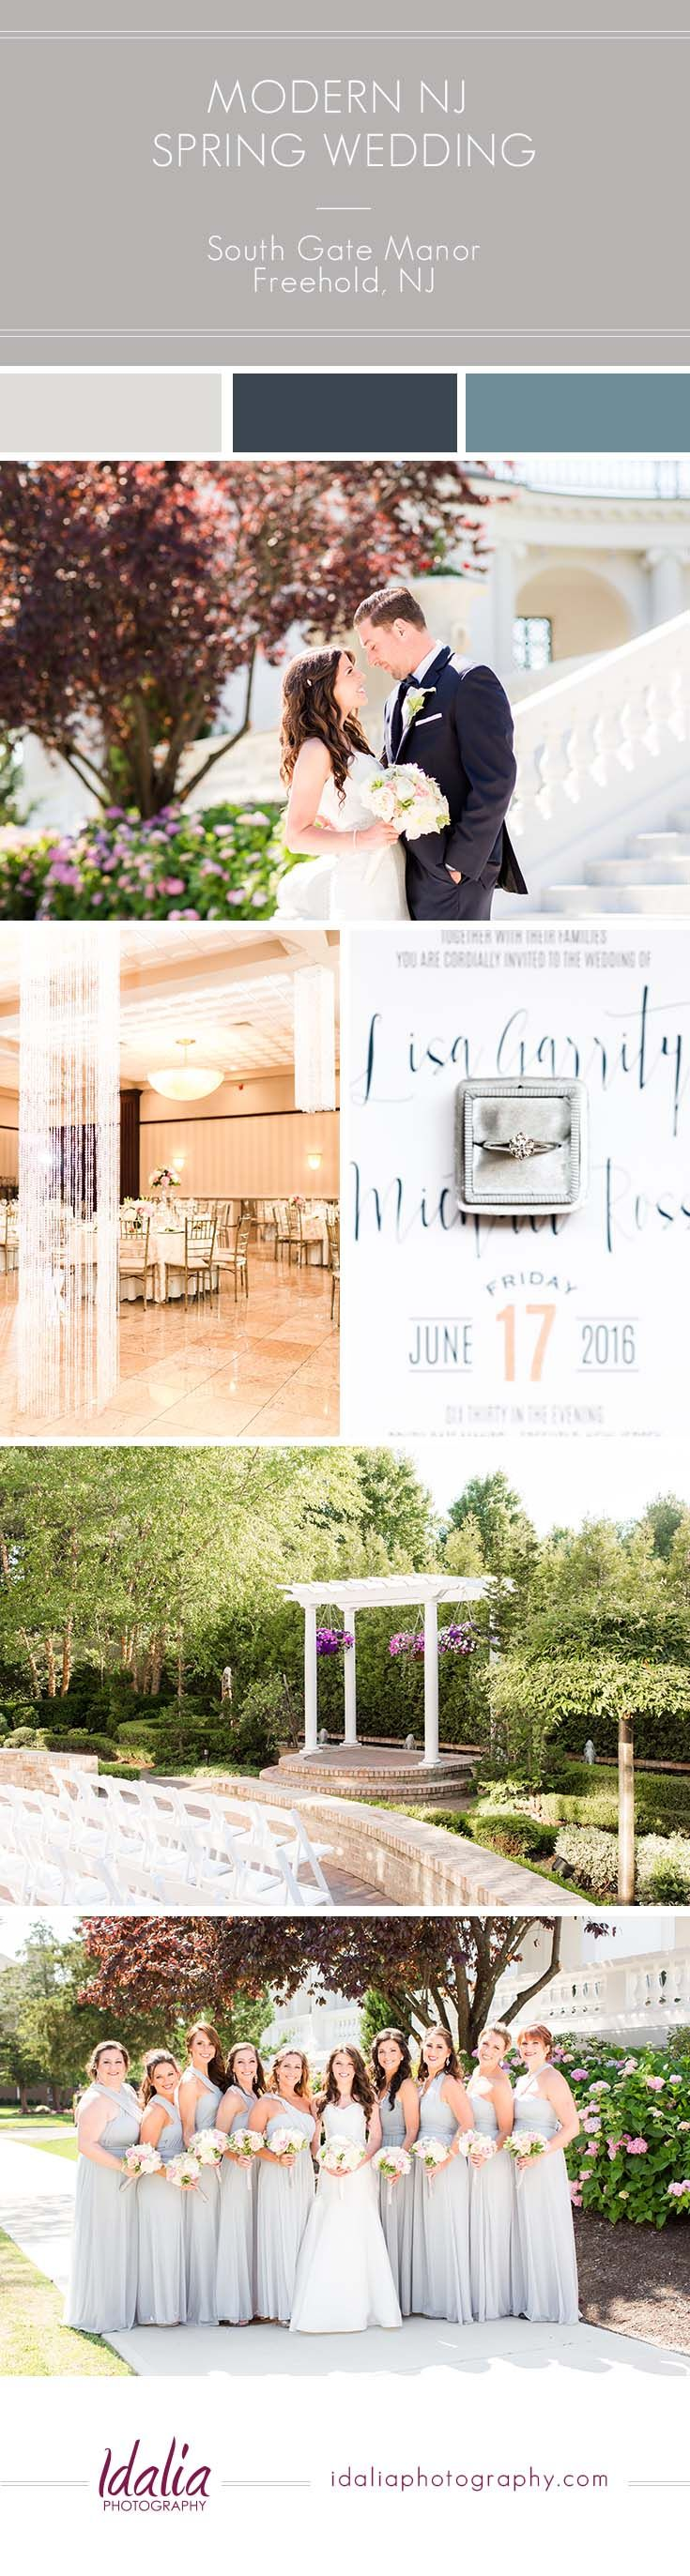 Wedding Reception Venues In Freehold Nj Crystal ballroom events